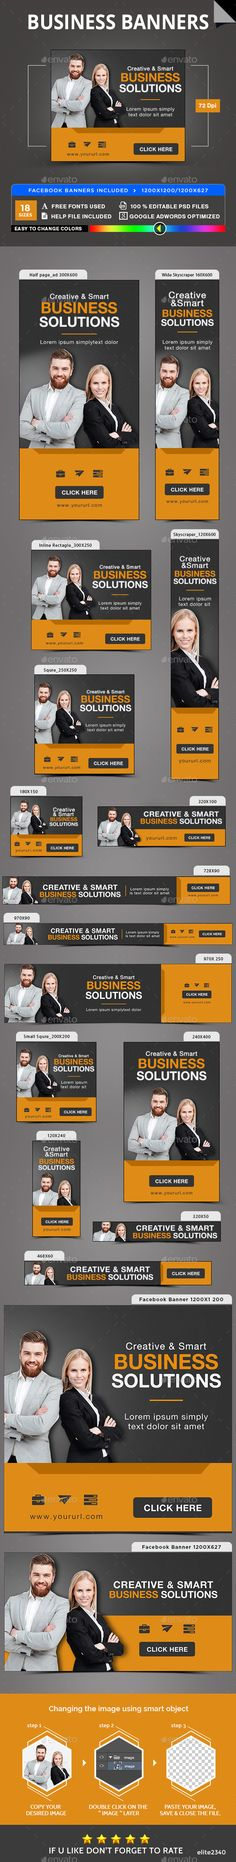 Promote your Products and services with this great looking Banner Set. 18 awesome quality banner template PSD files, including Fa